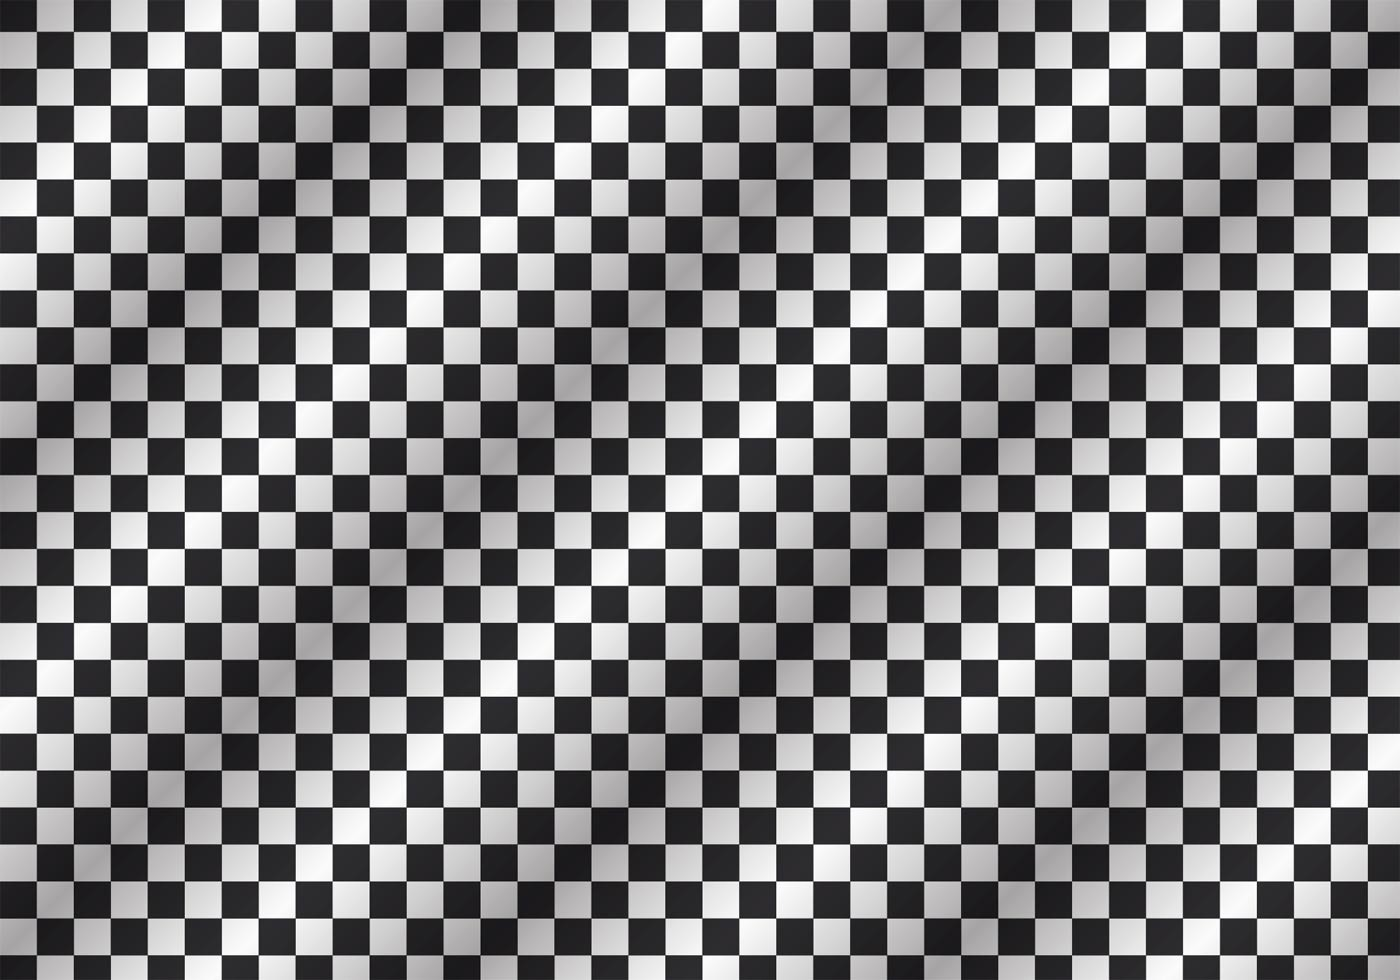 Pictures Of A Checker Board Lovely Vector Checkerboard Pattern with Shadow Download Free